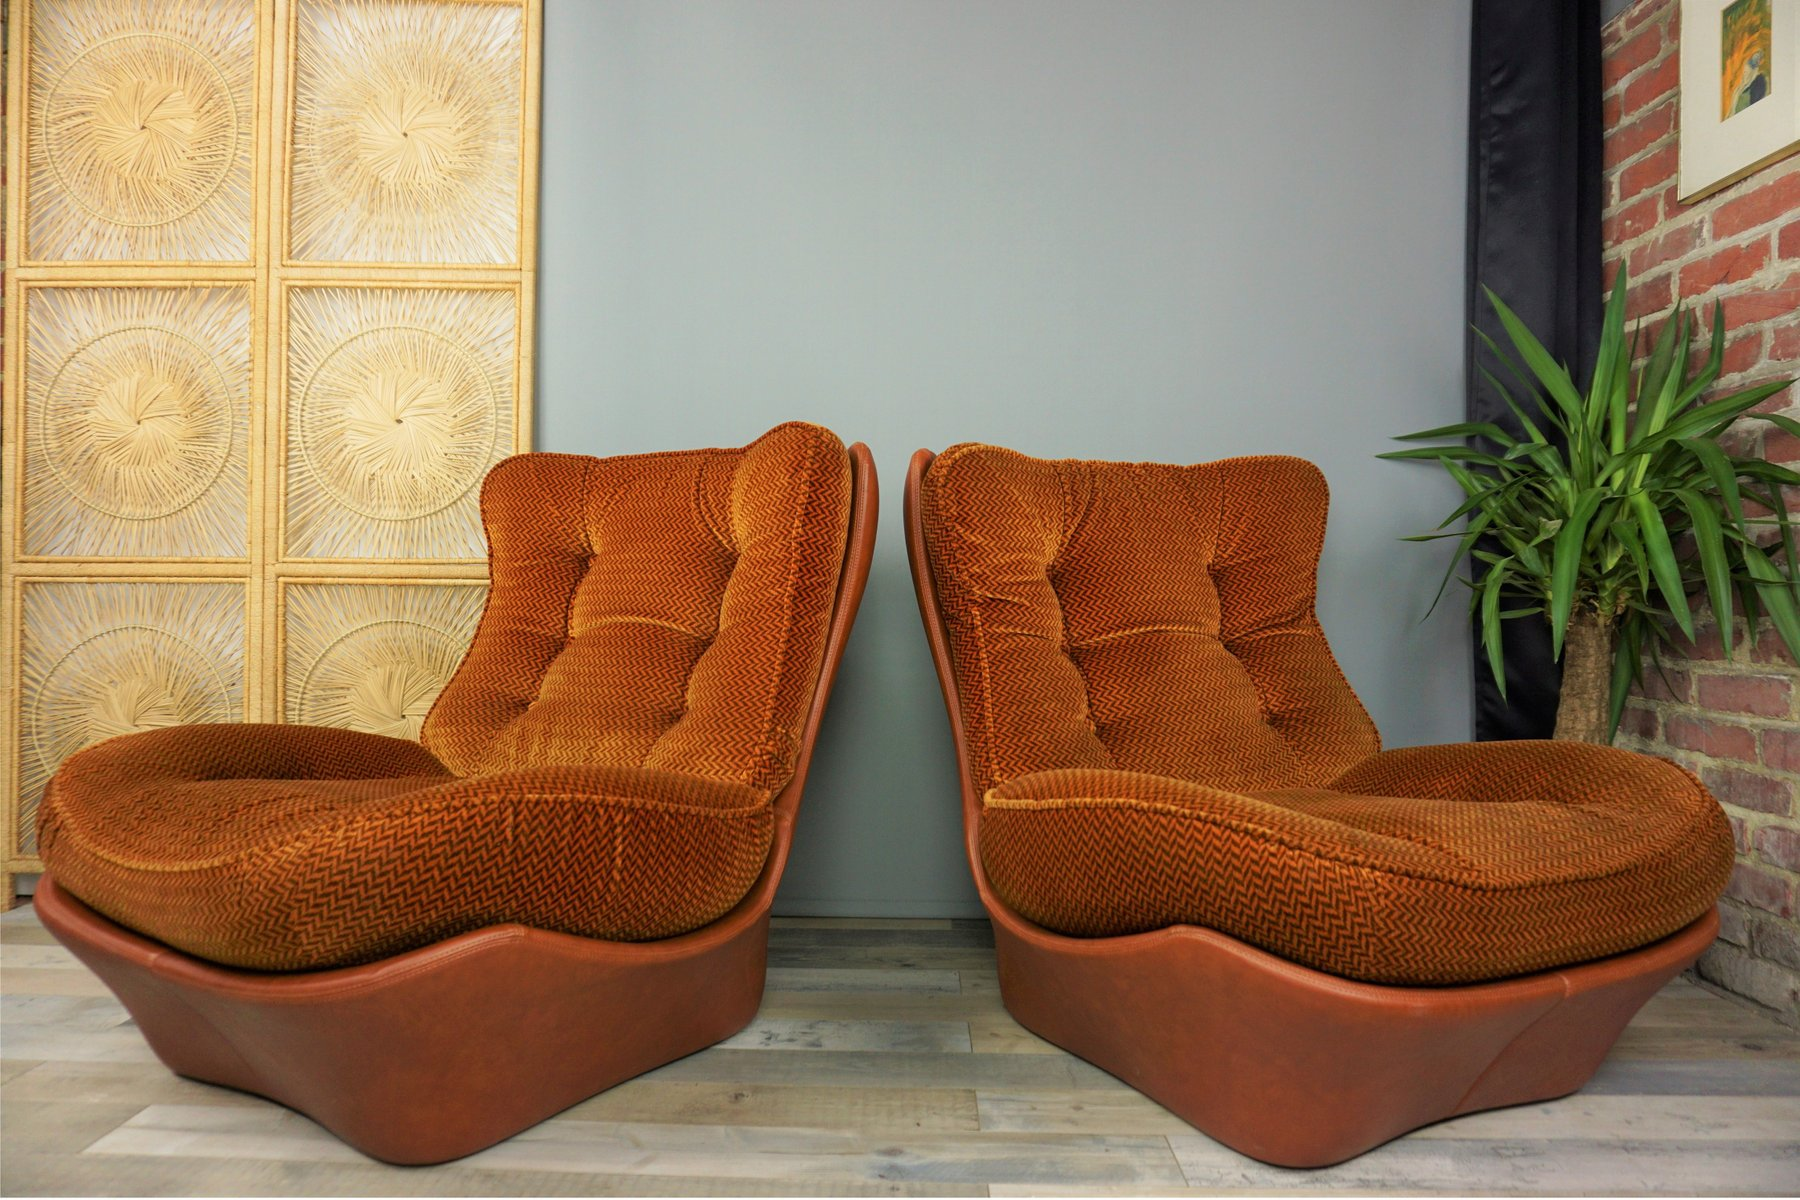 Vintage french lounge set from beka 1970s for sale at pamono for Vintage parisian lounge